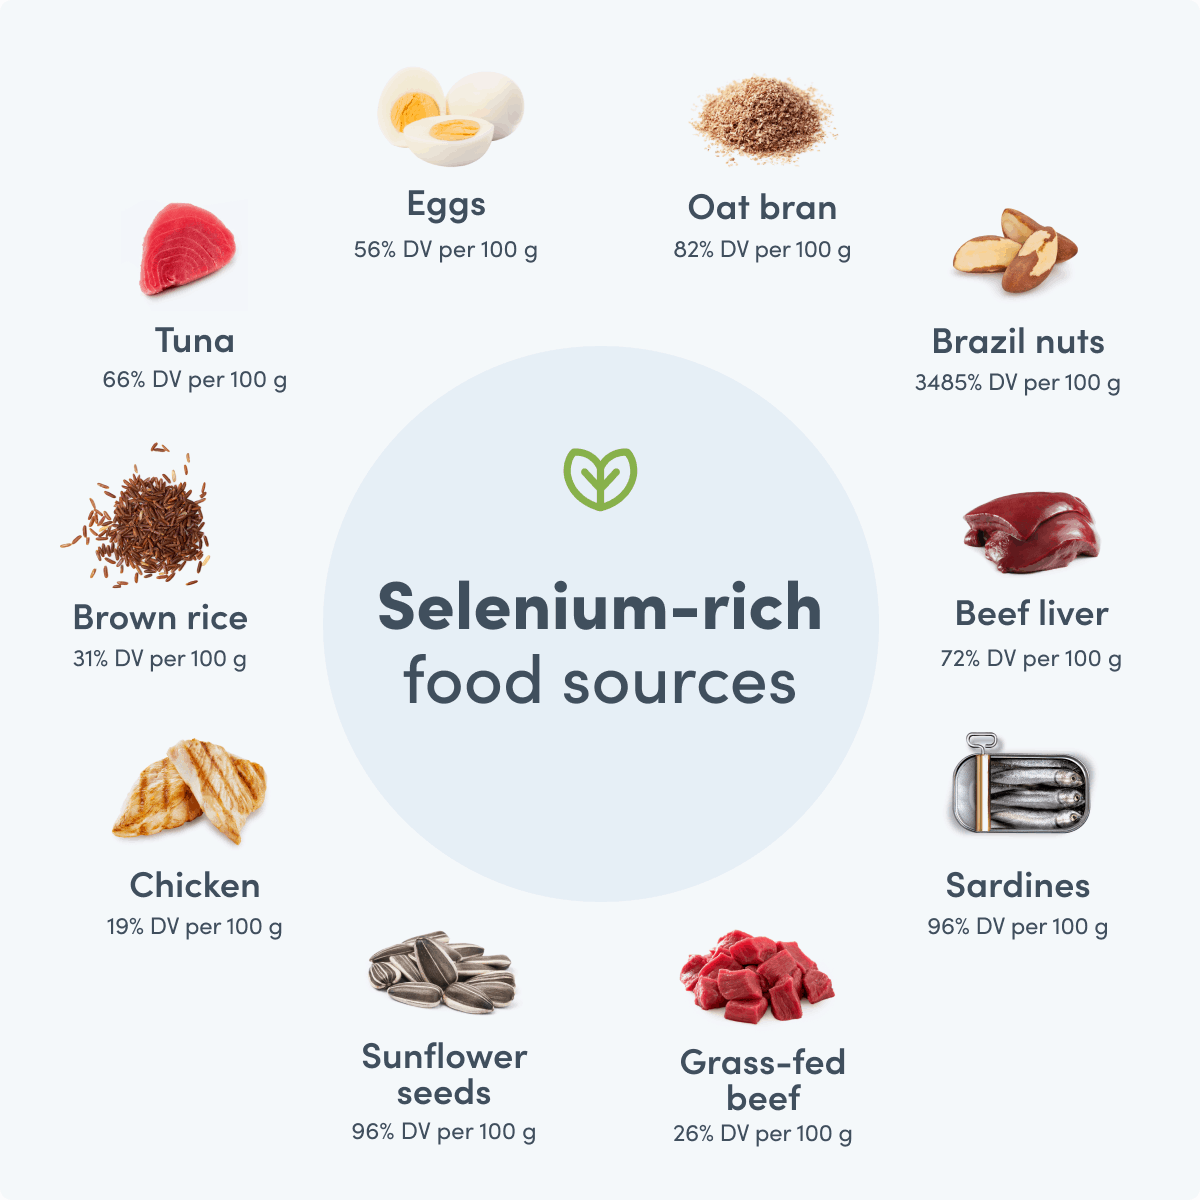 Selenium rich food sources